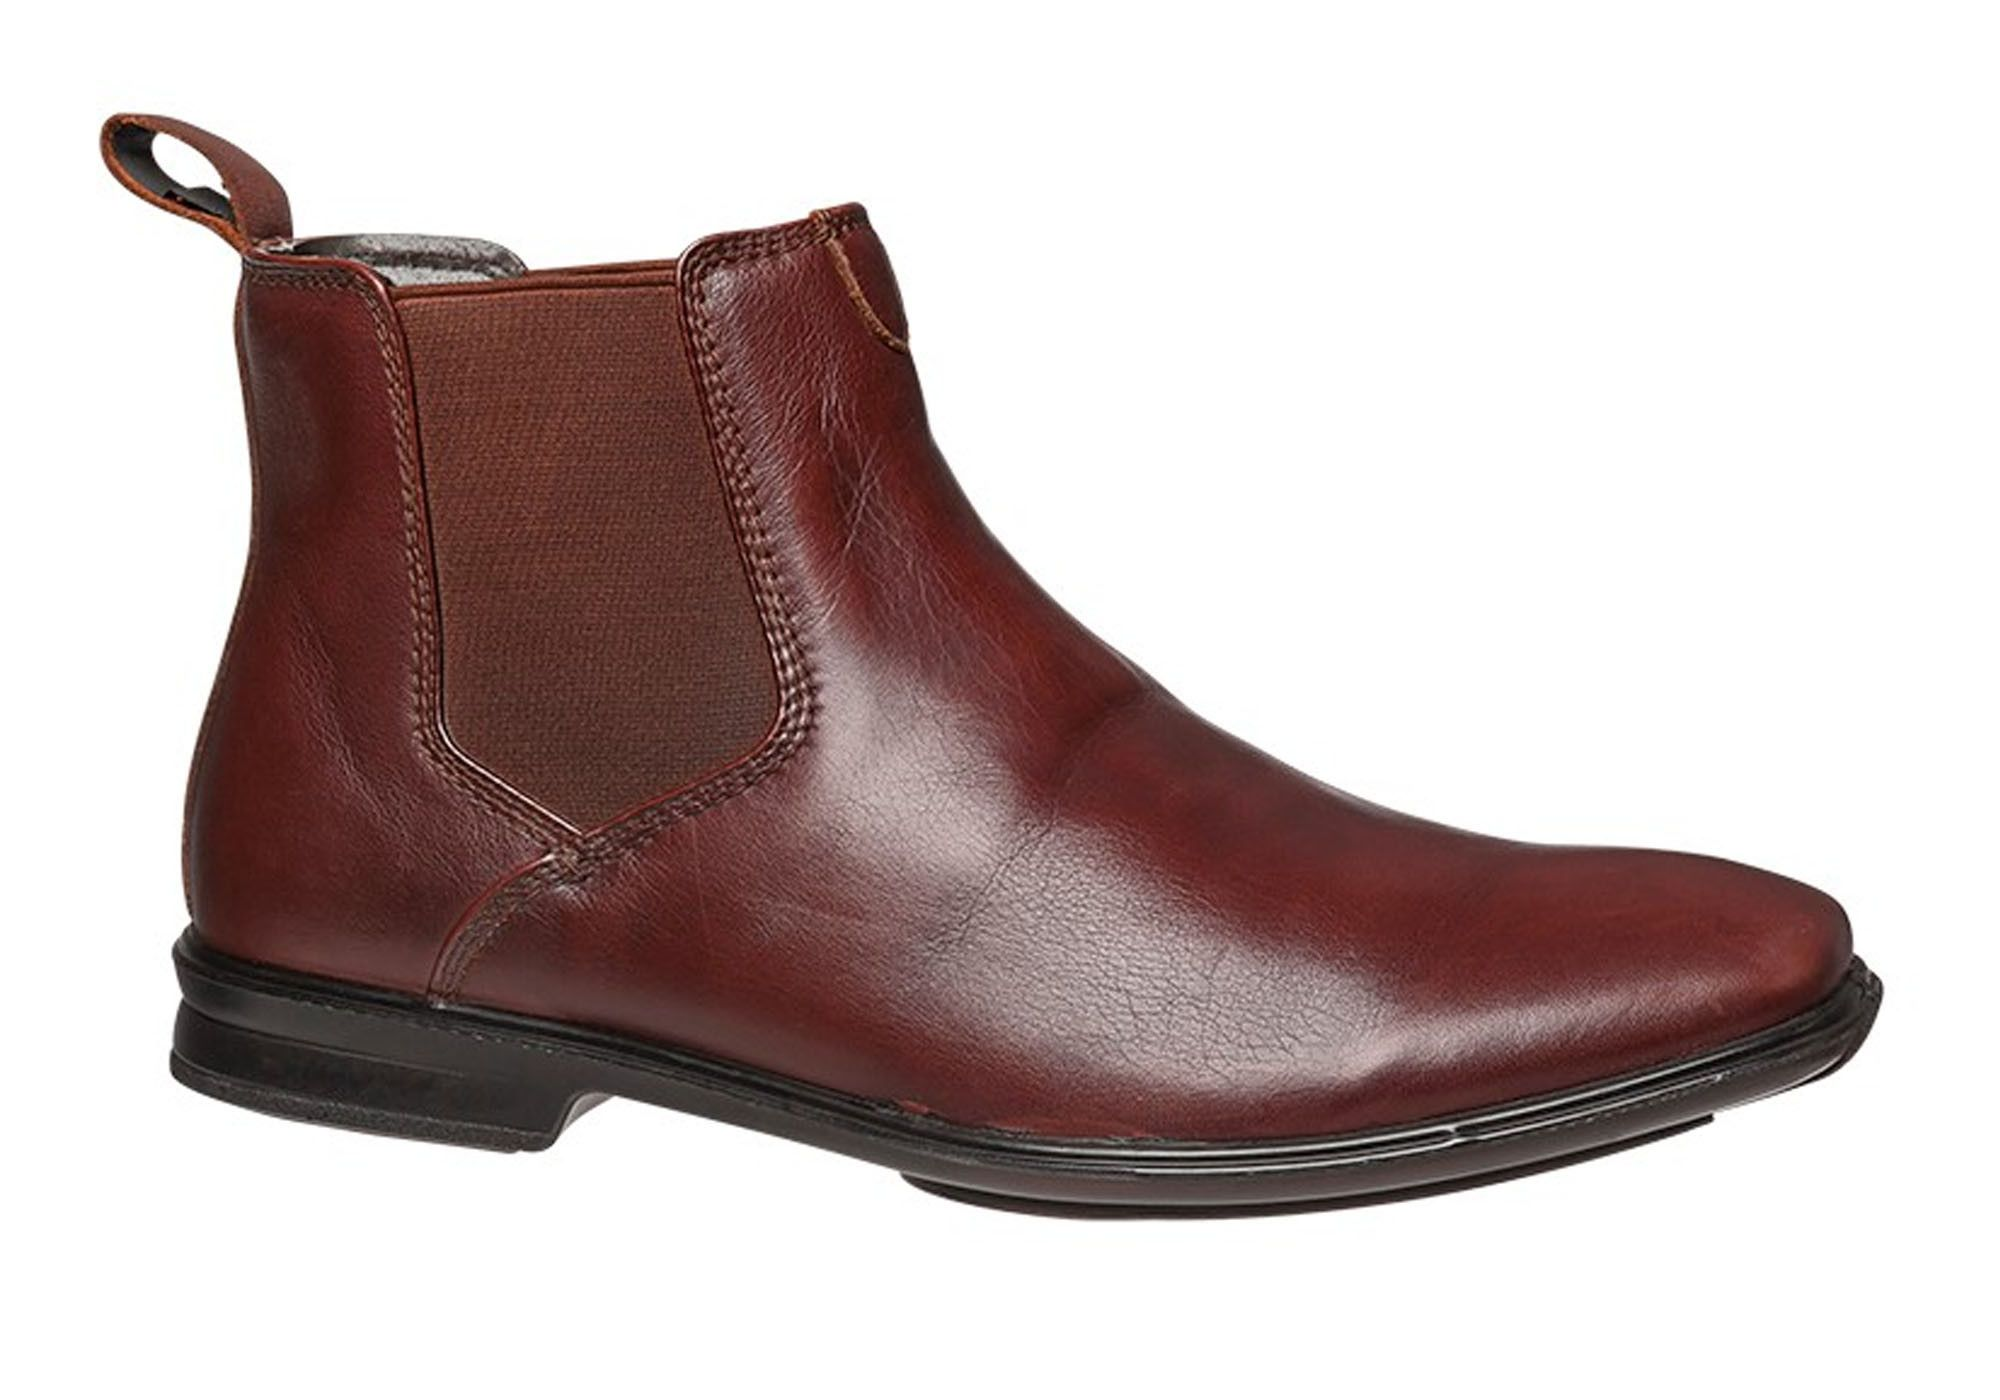 Hush Puppies Chelsea Mens Leather Dress Boots Brand